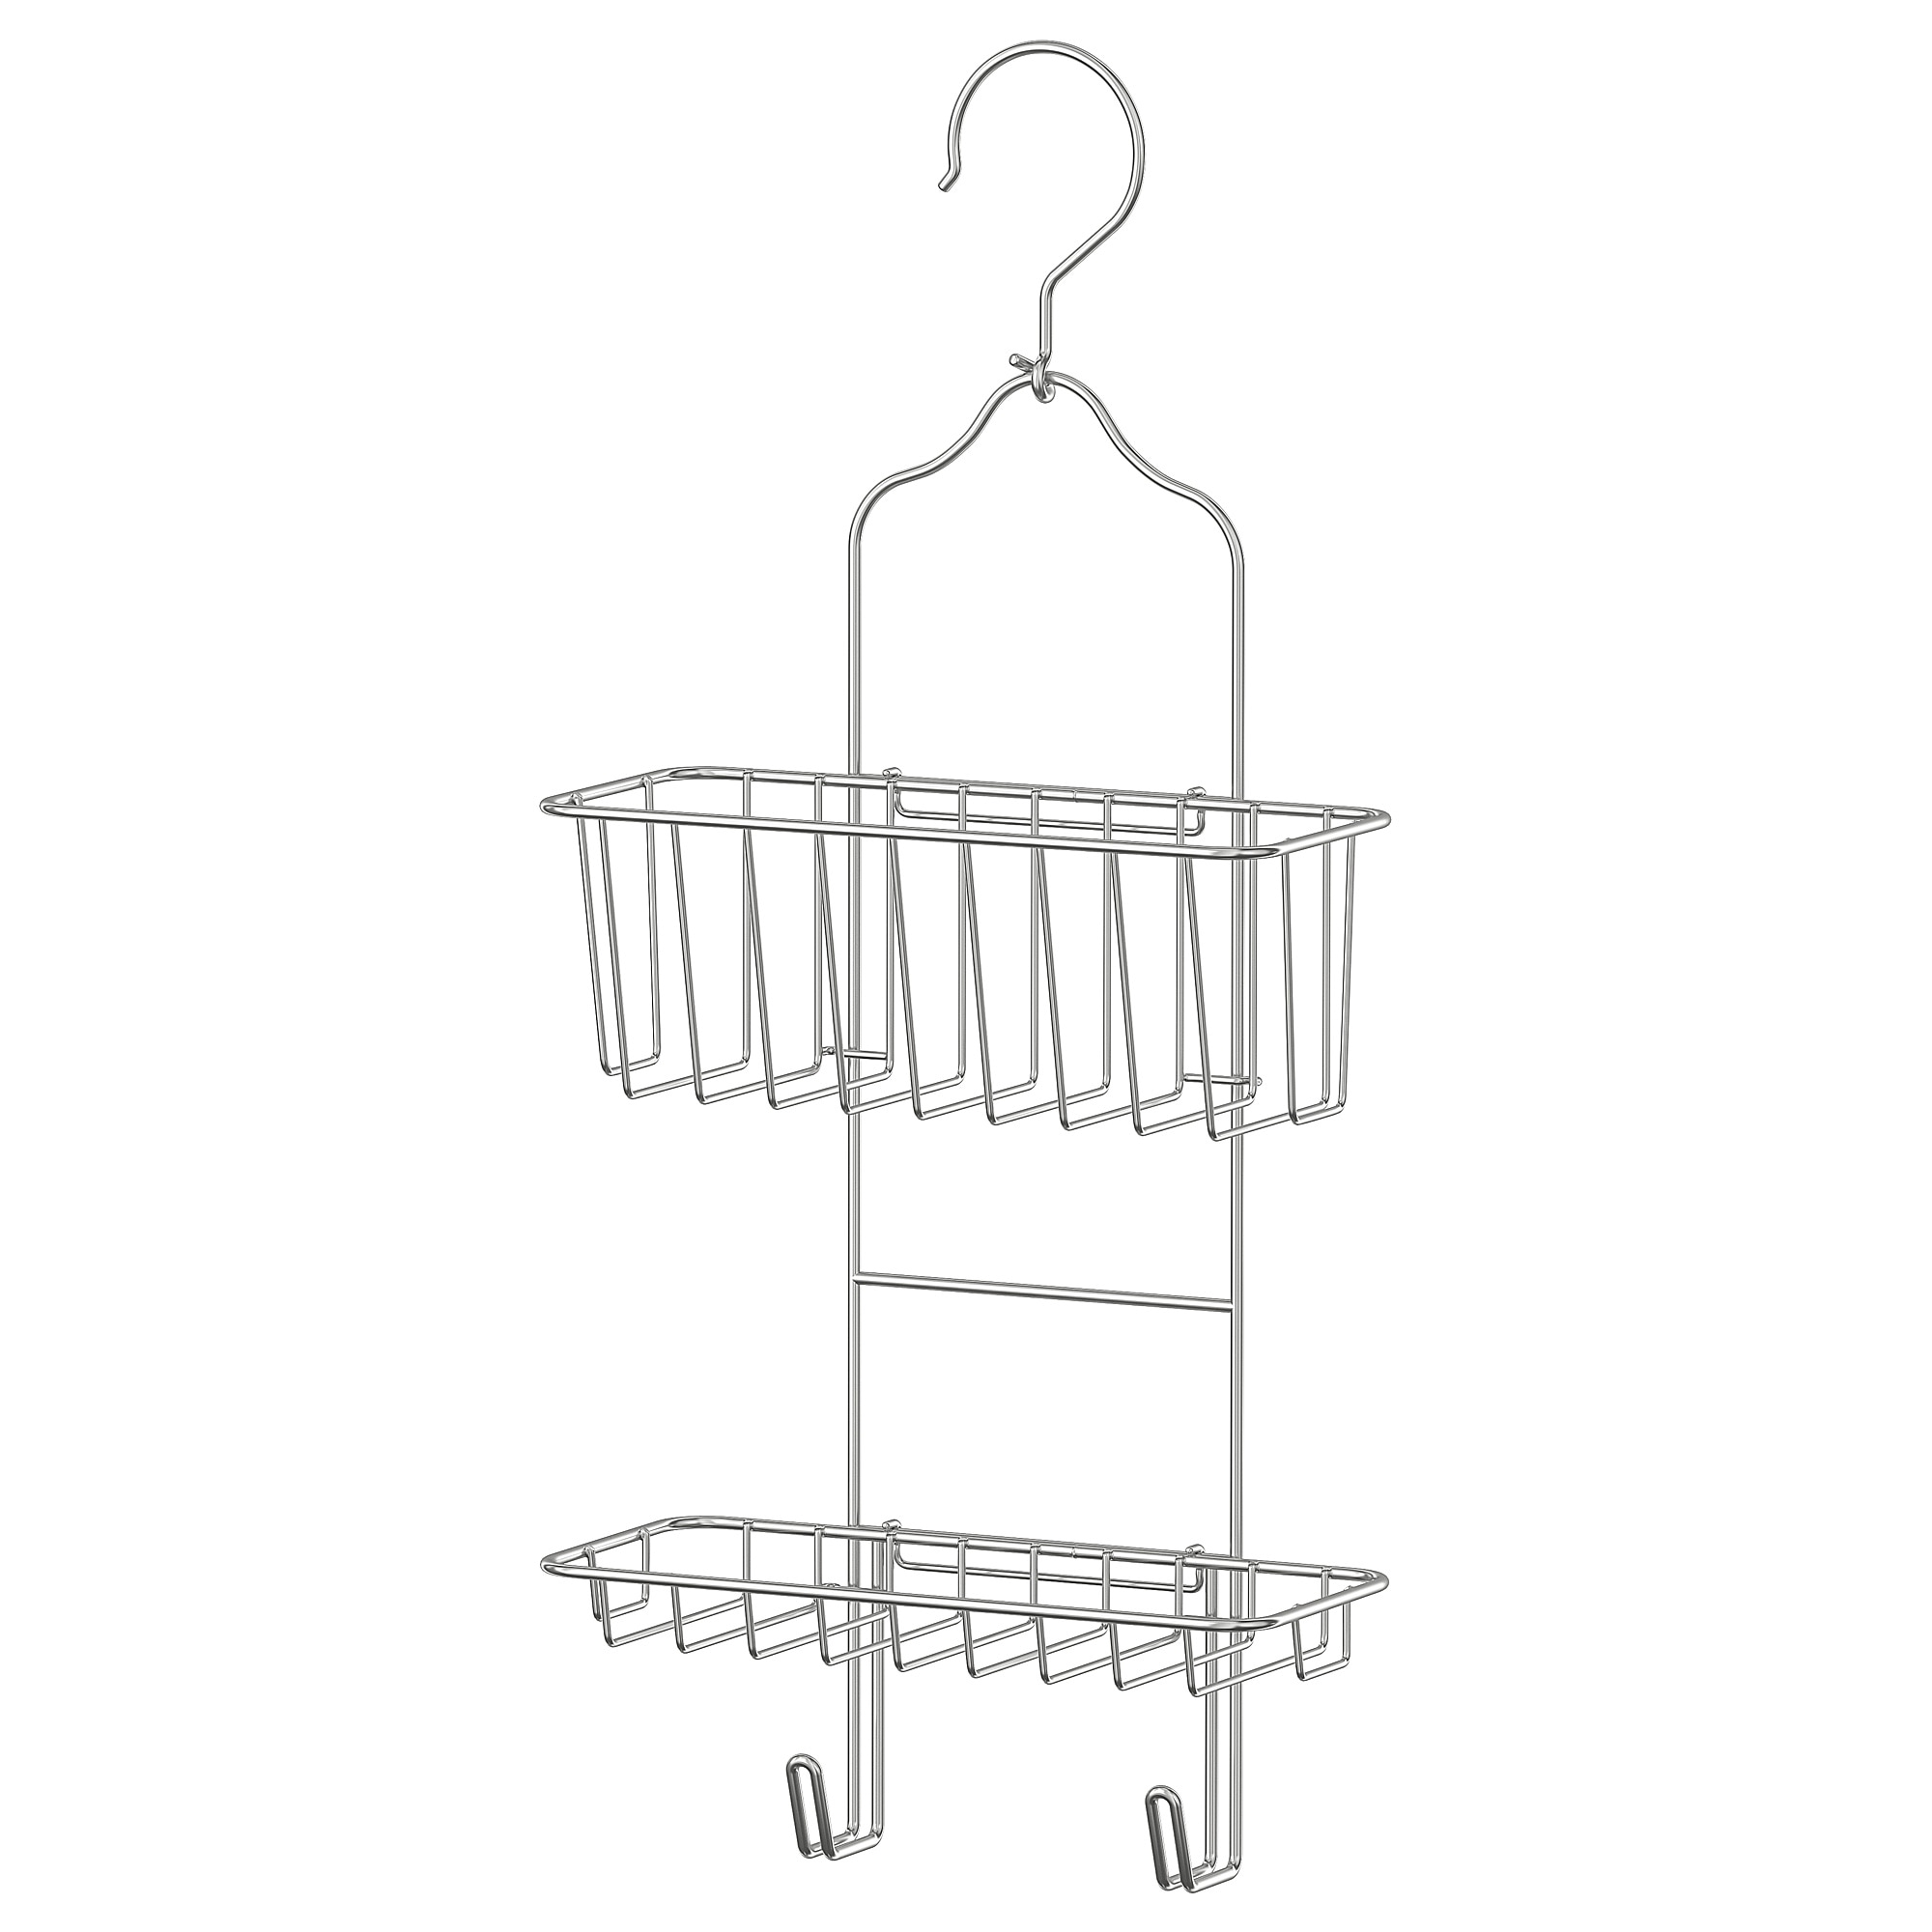 Immeln Shower Caddy Two Tiers Zinc Plated